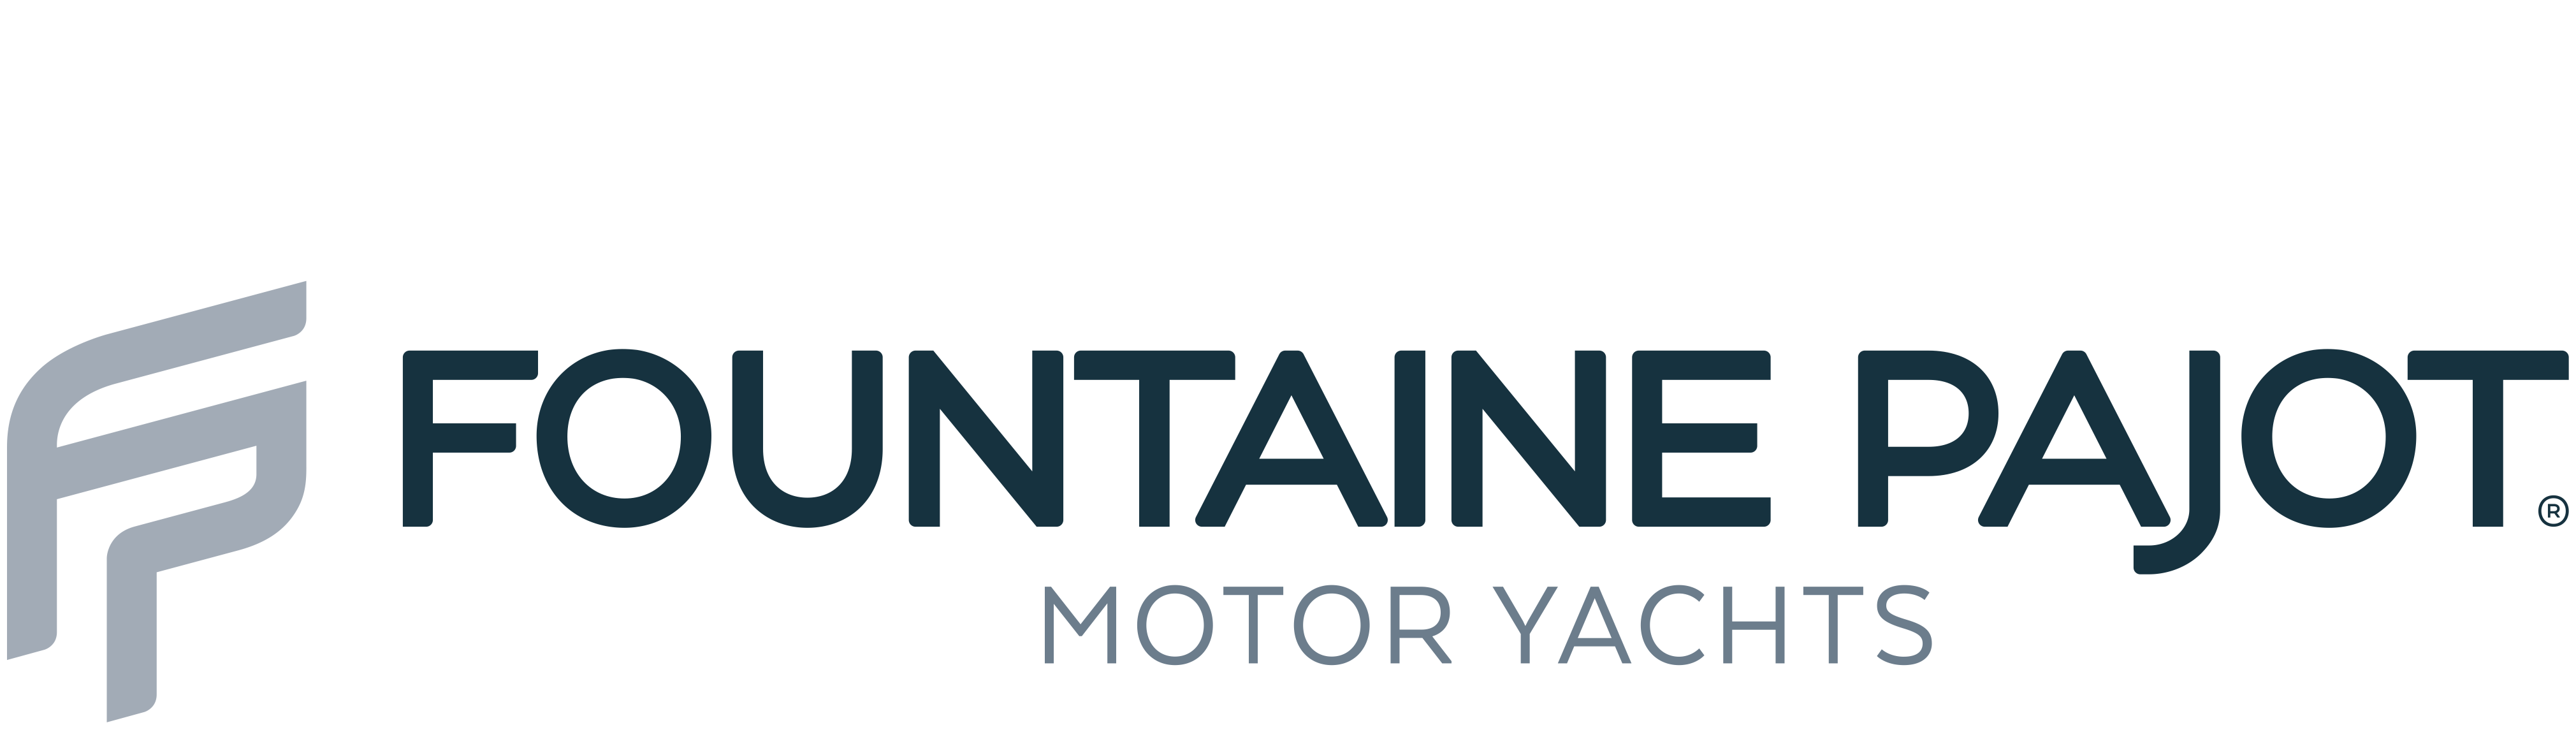 Fountaine Pajot Motor Yachts logo